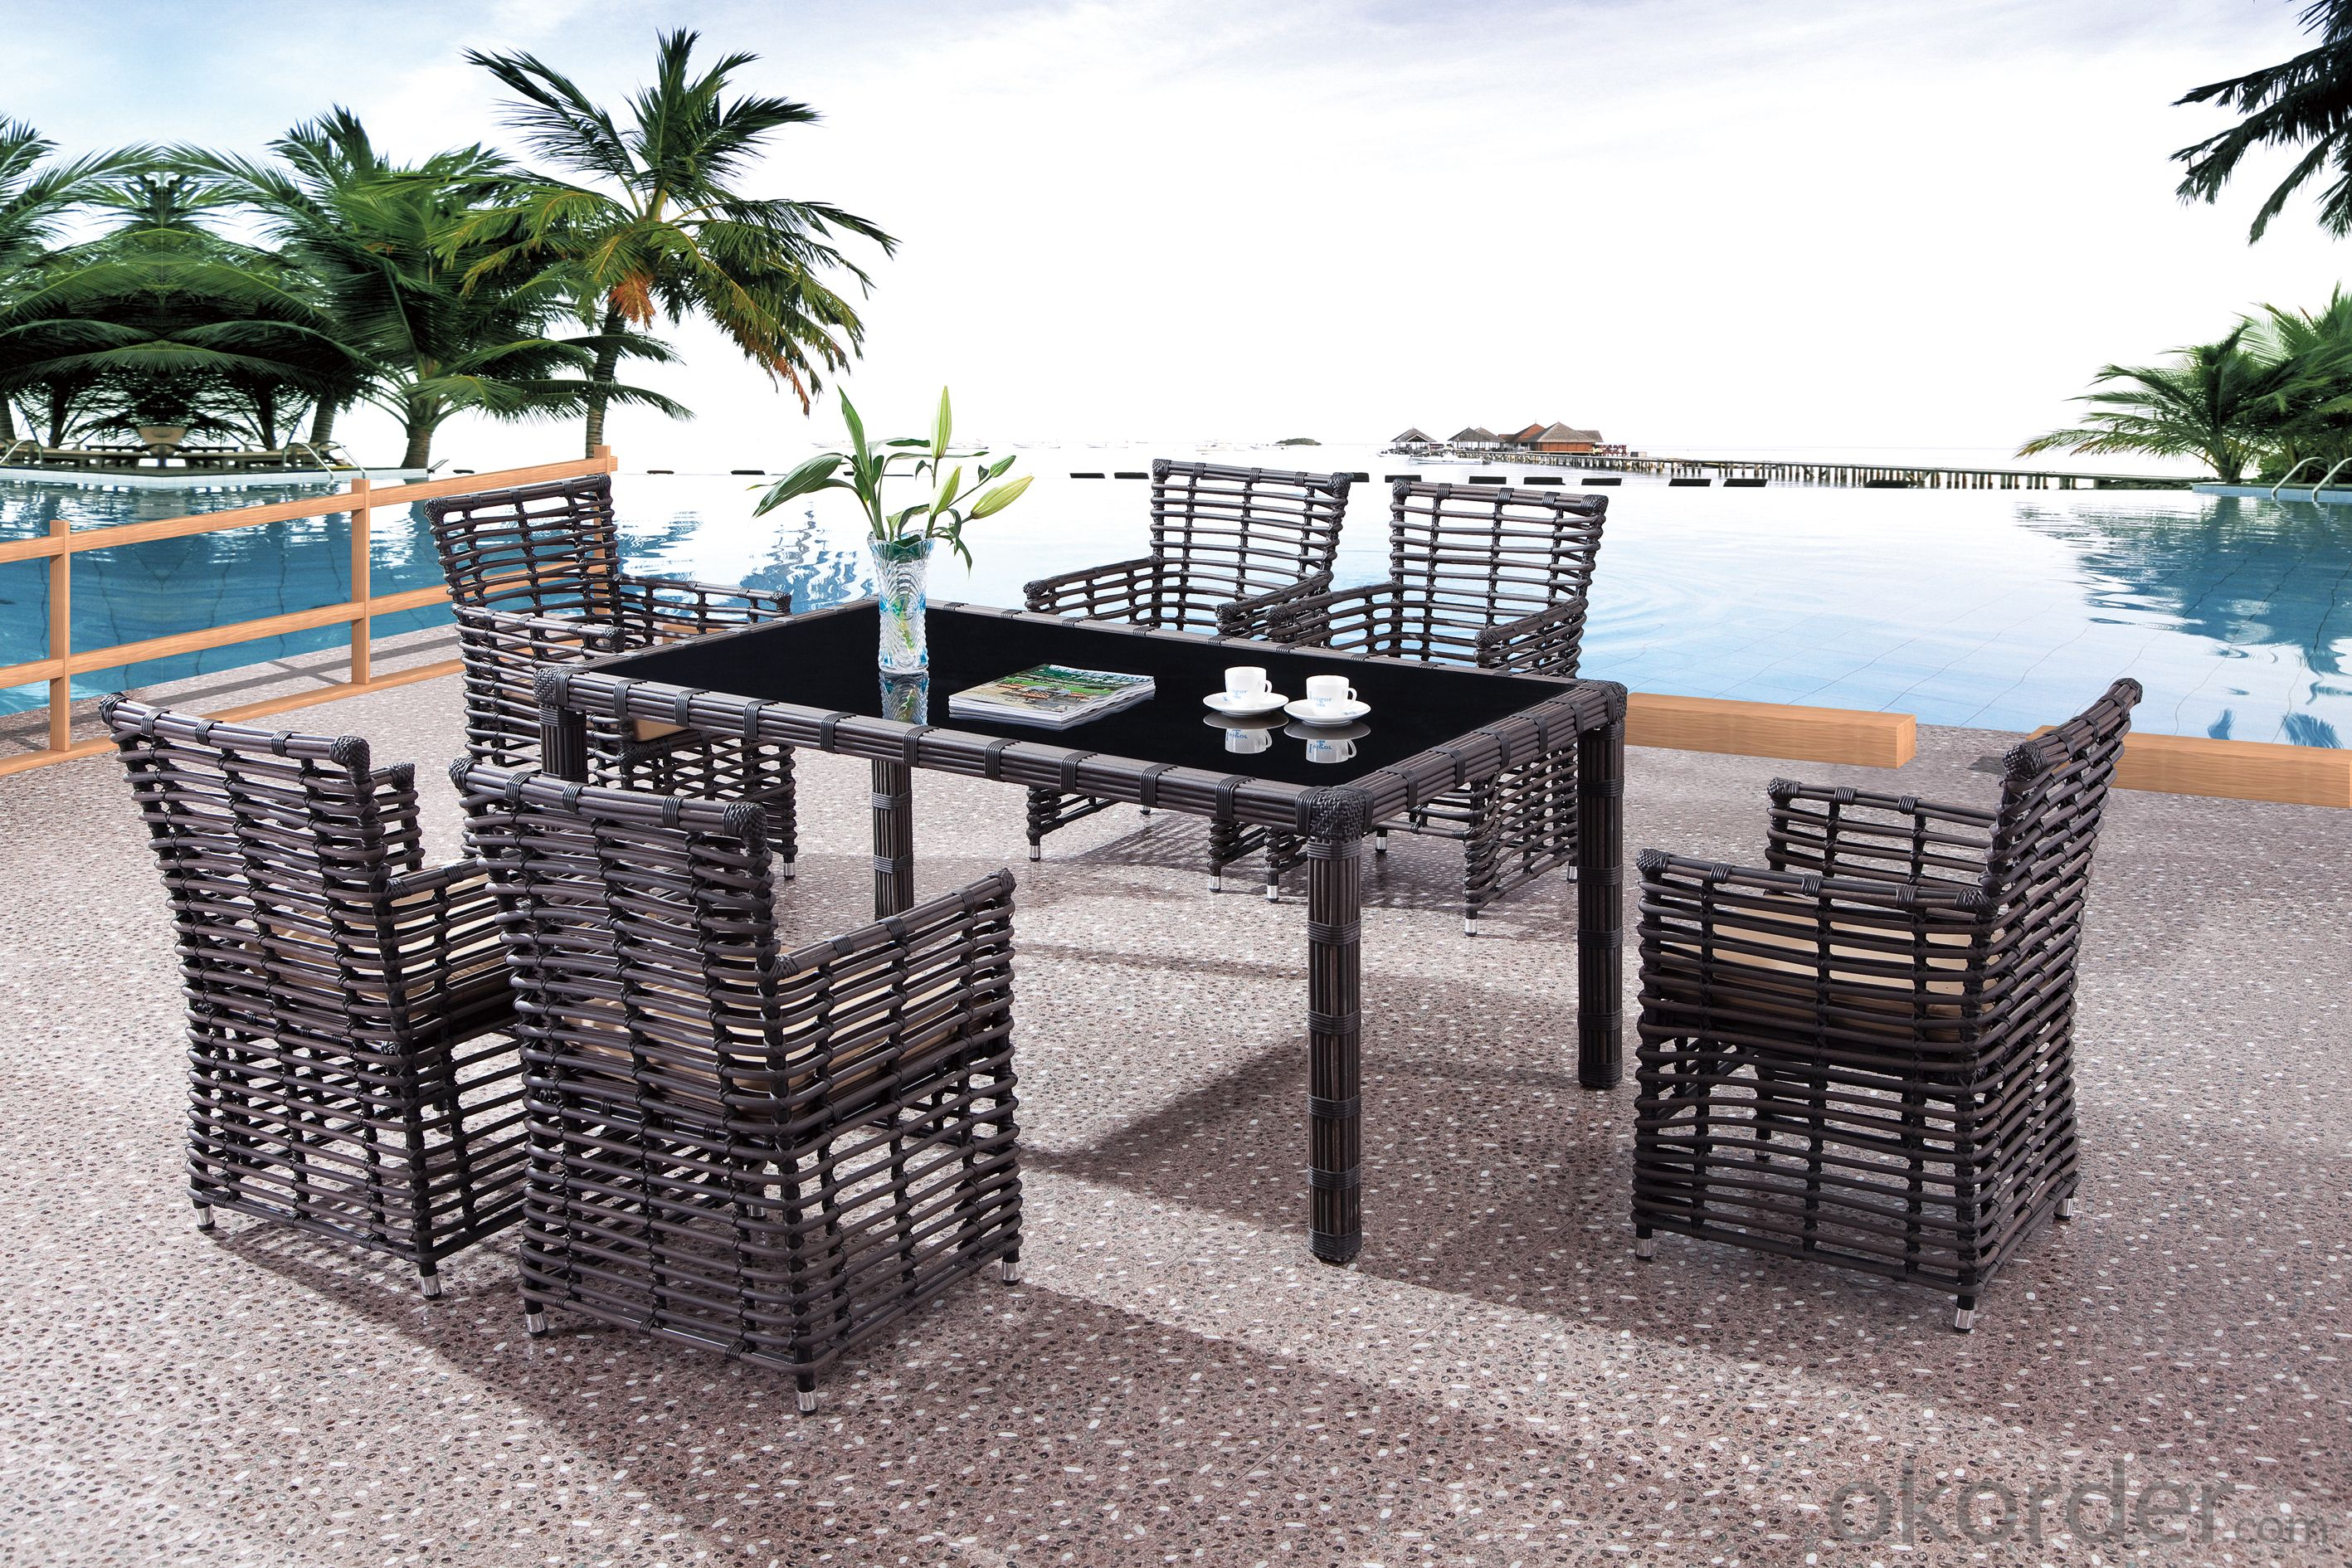 Outdoor furniture Garden Dining Set G1330-6330